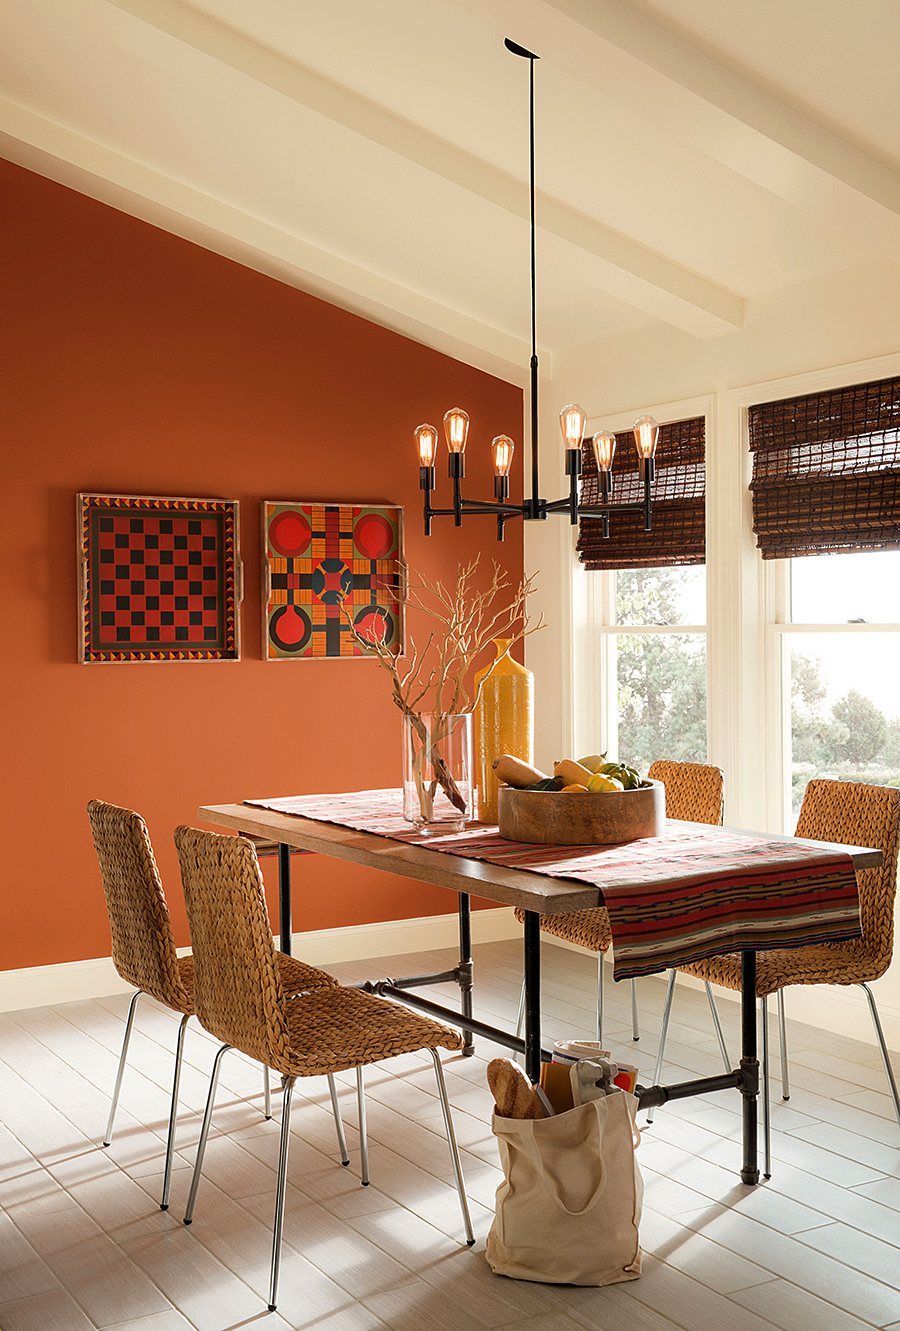 Cream Colored Dining Room with Orange Accents